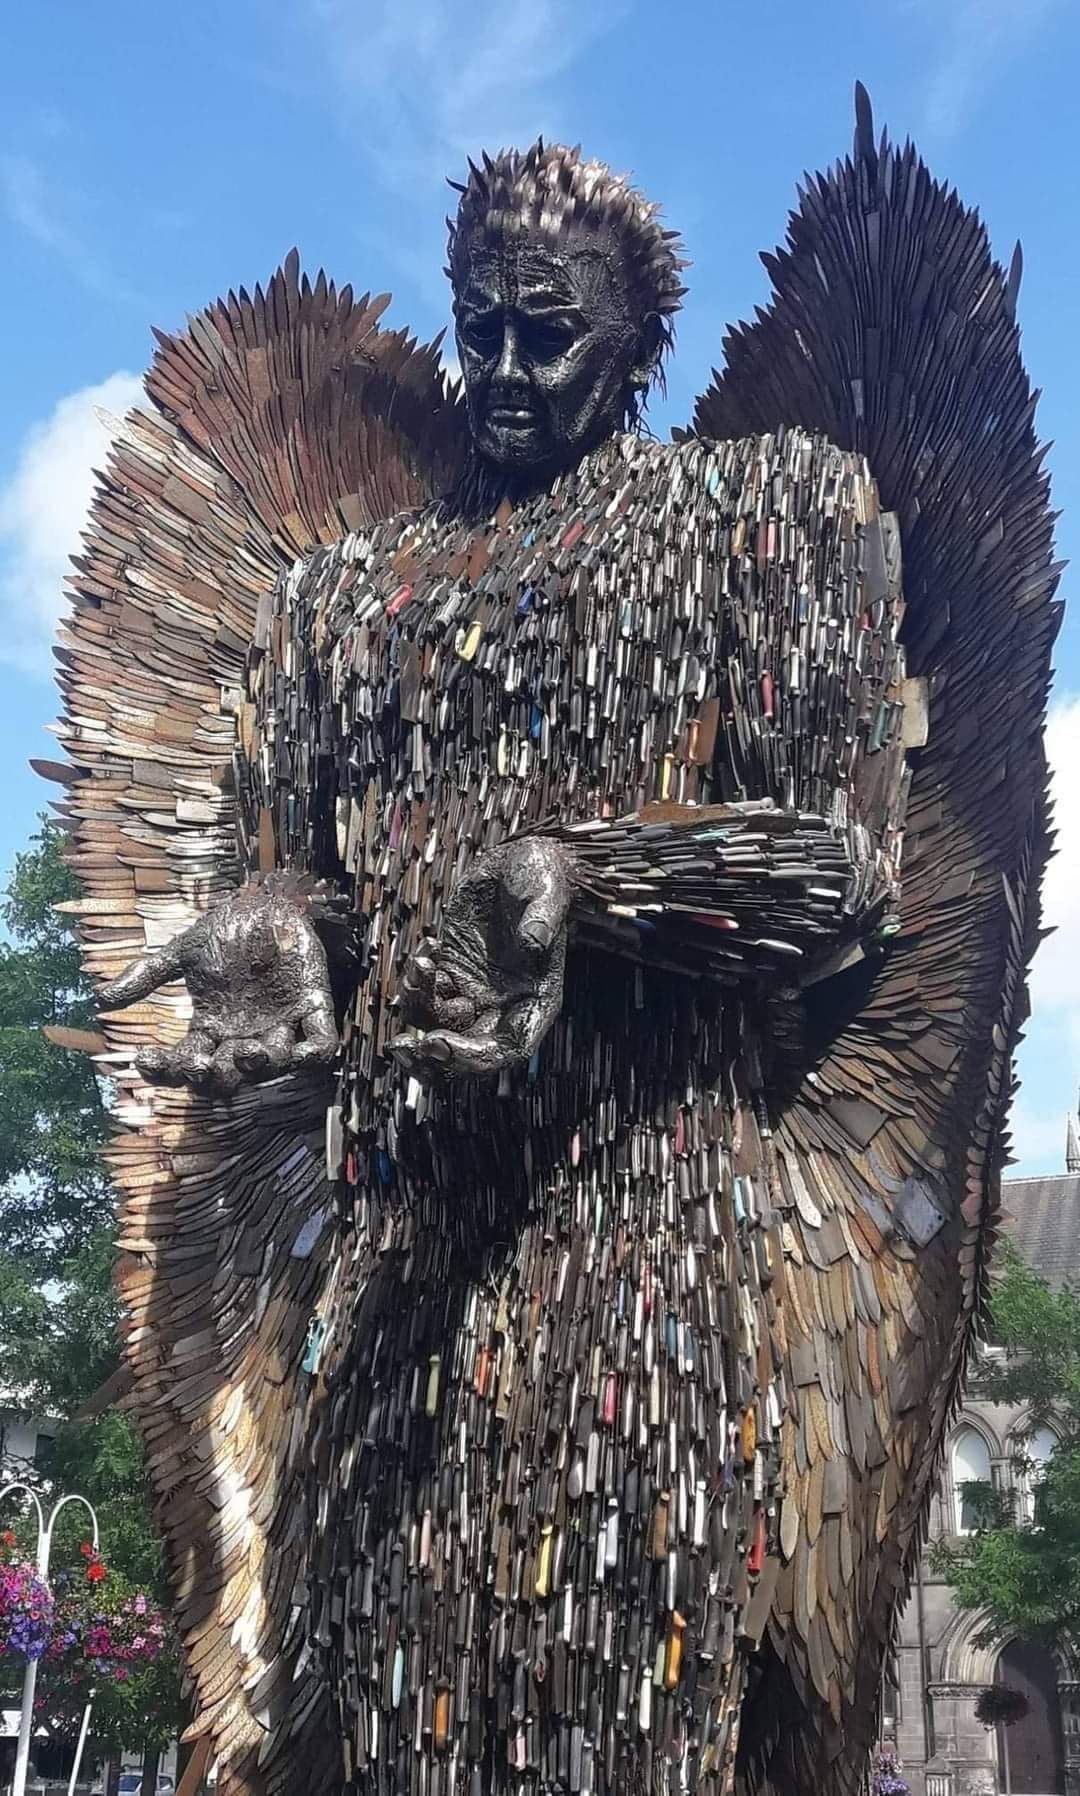 1Pic - Knife angel in the UK, Oswestry. A statue 8 meters high created from 100 000 knives by the artist Alfie Bradley